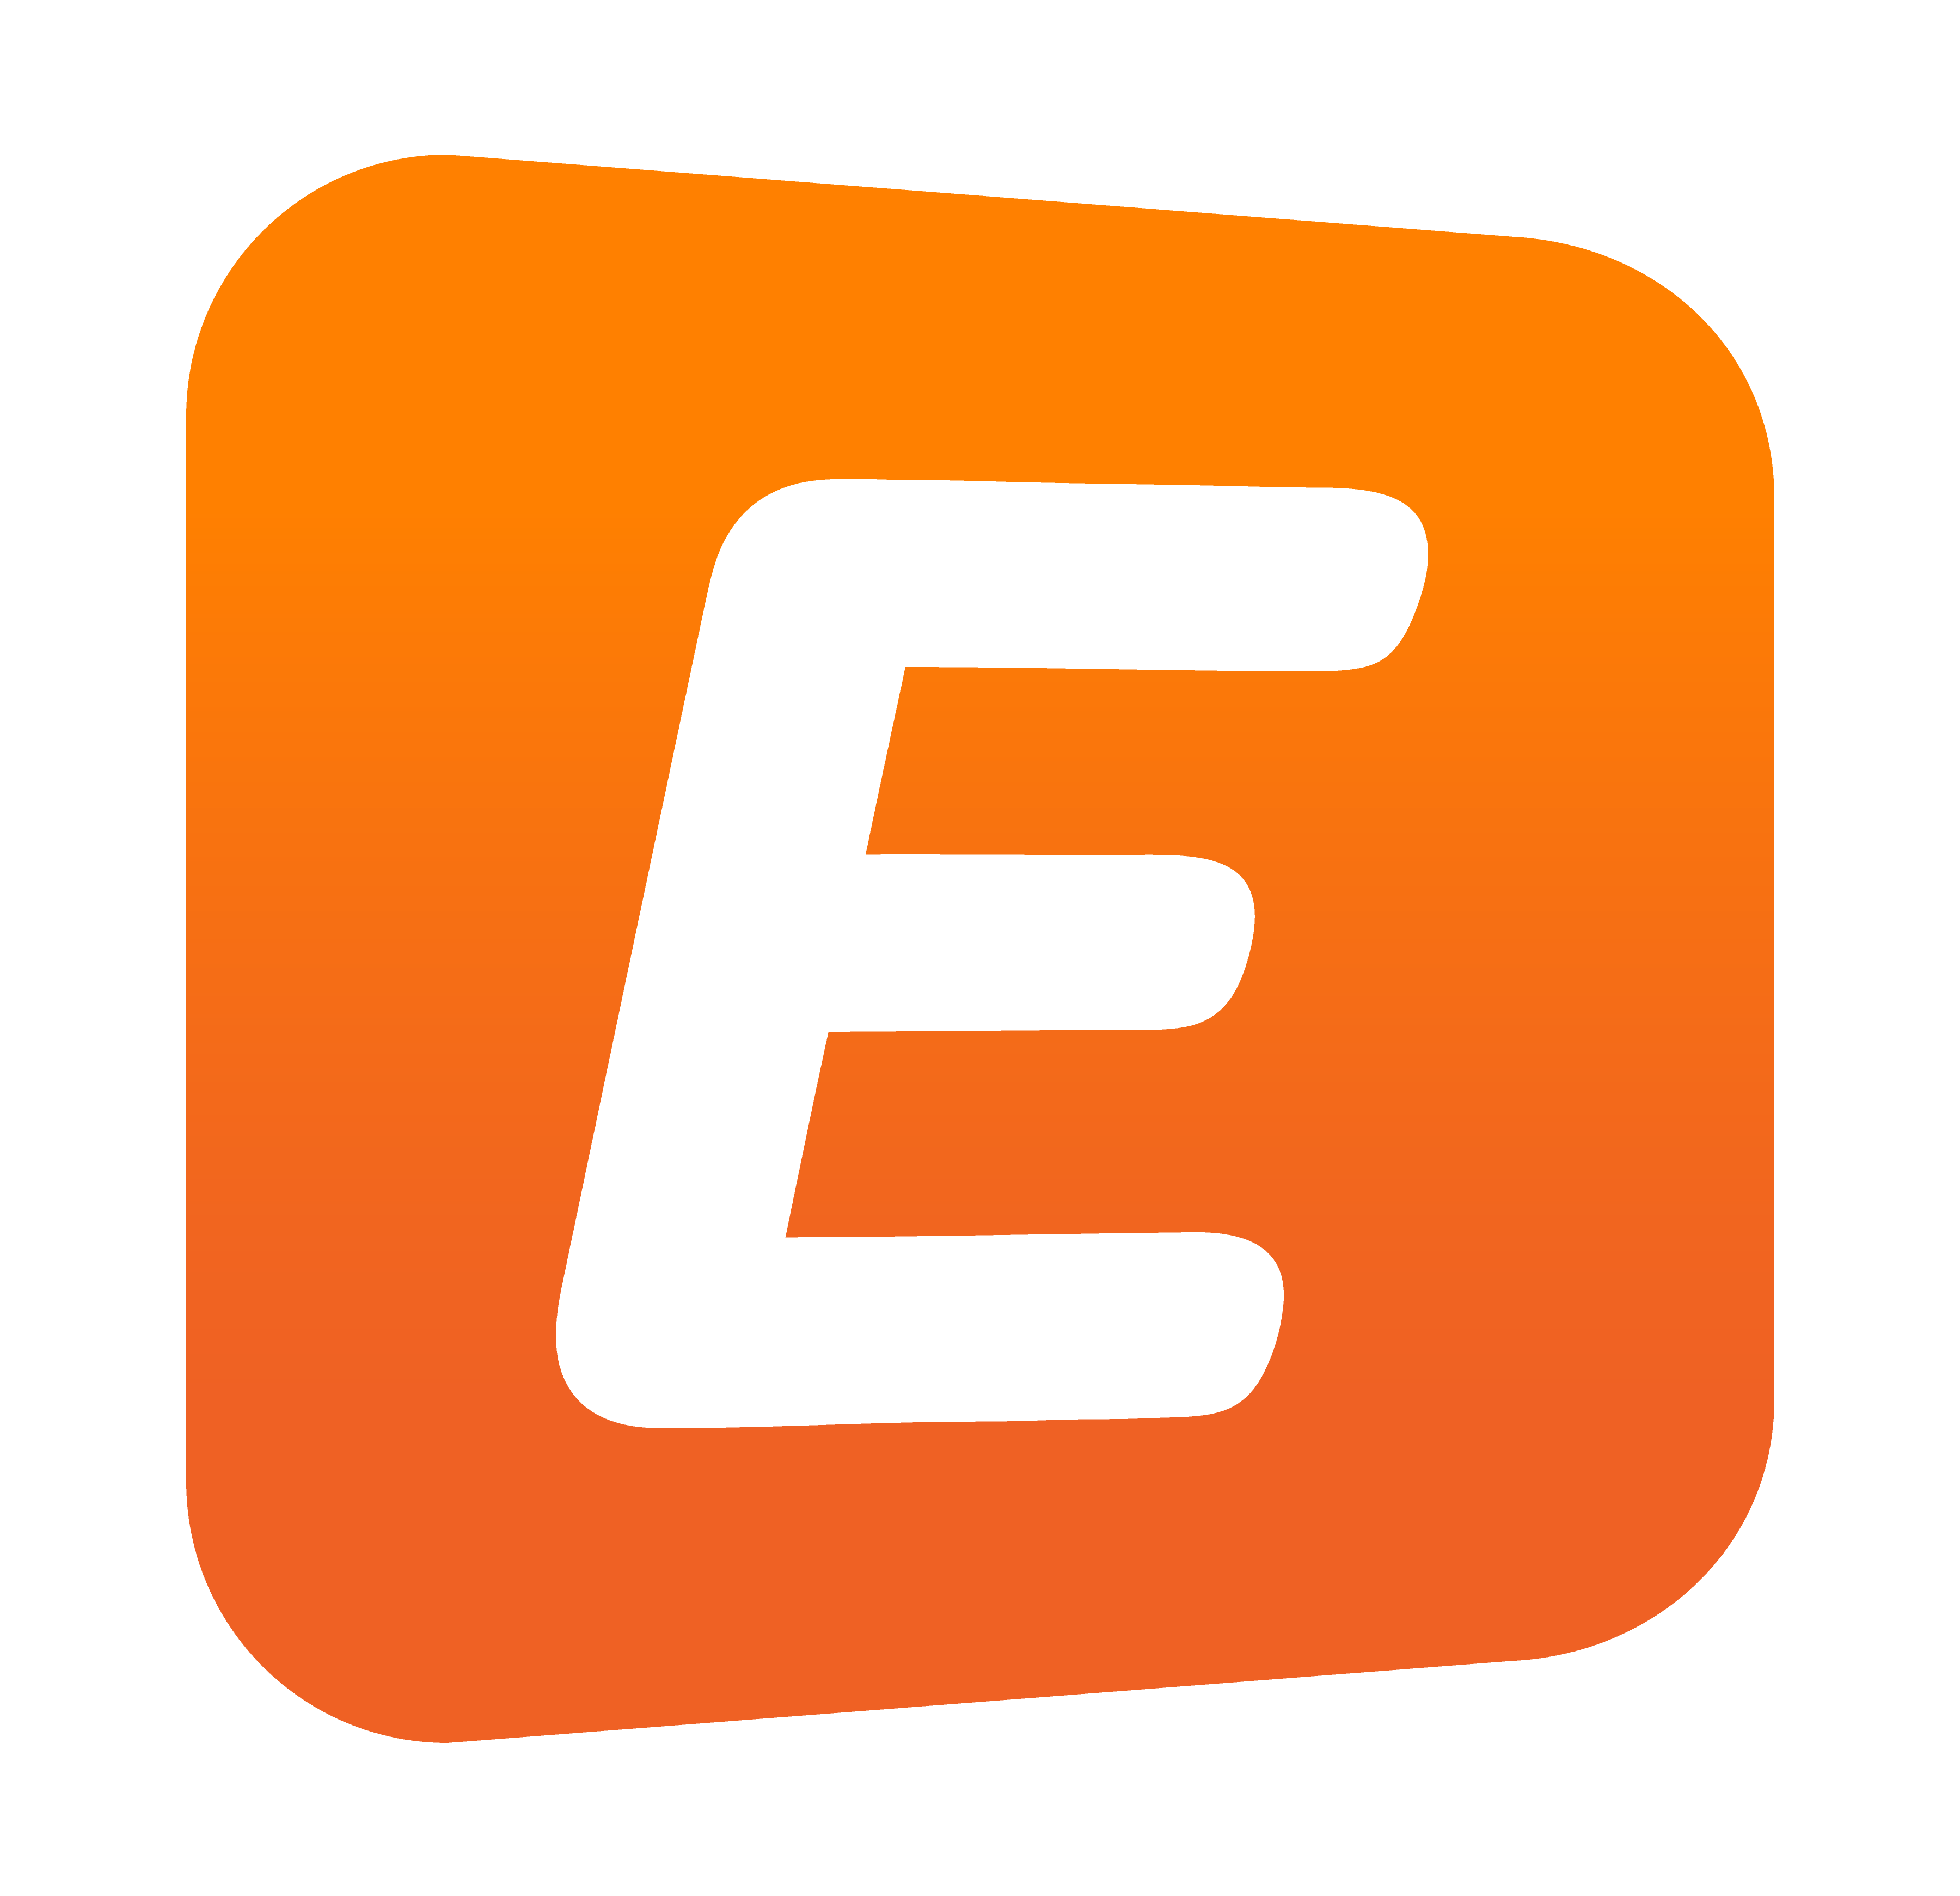 eventbrite logo png 10 free Cliparts   Download images on